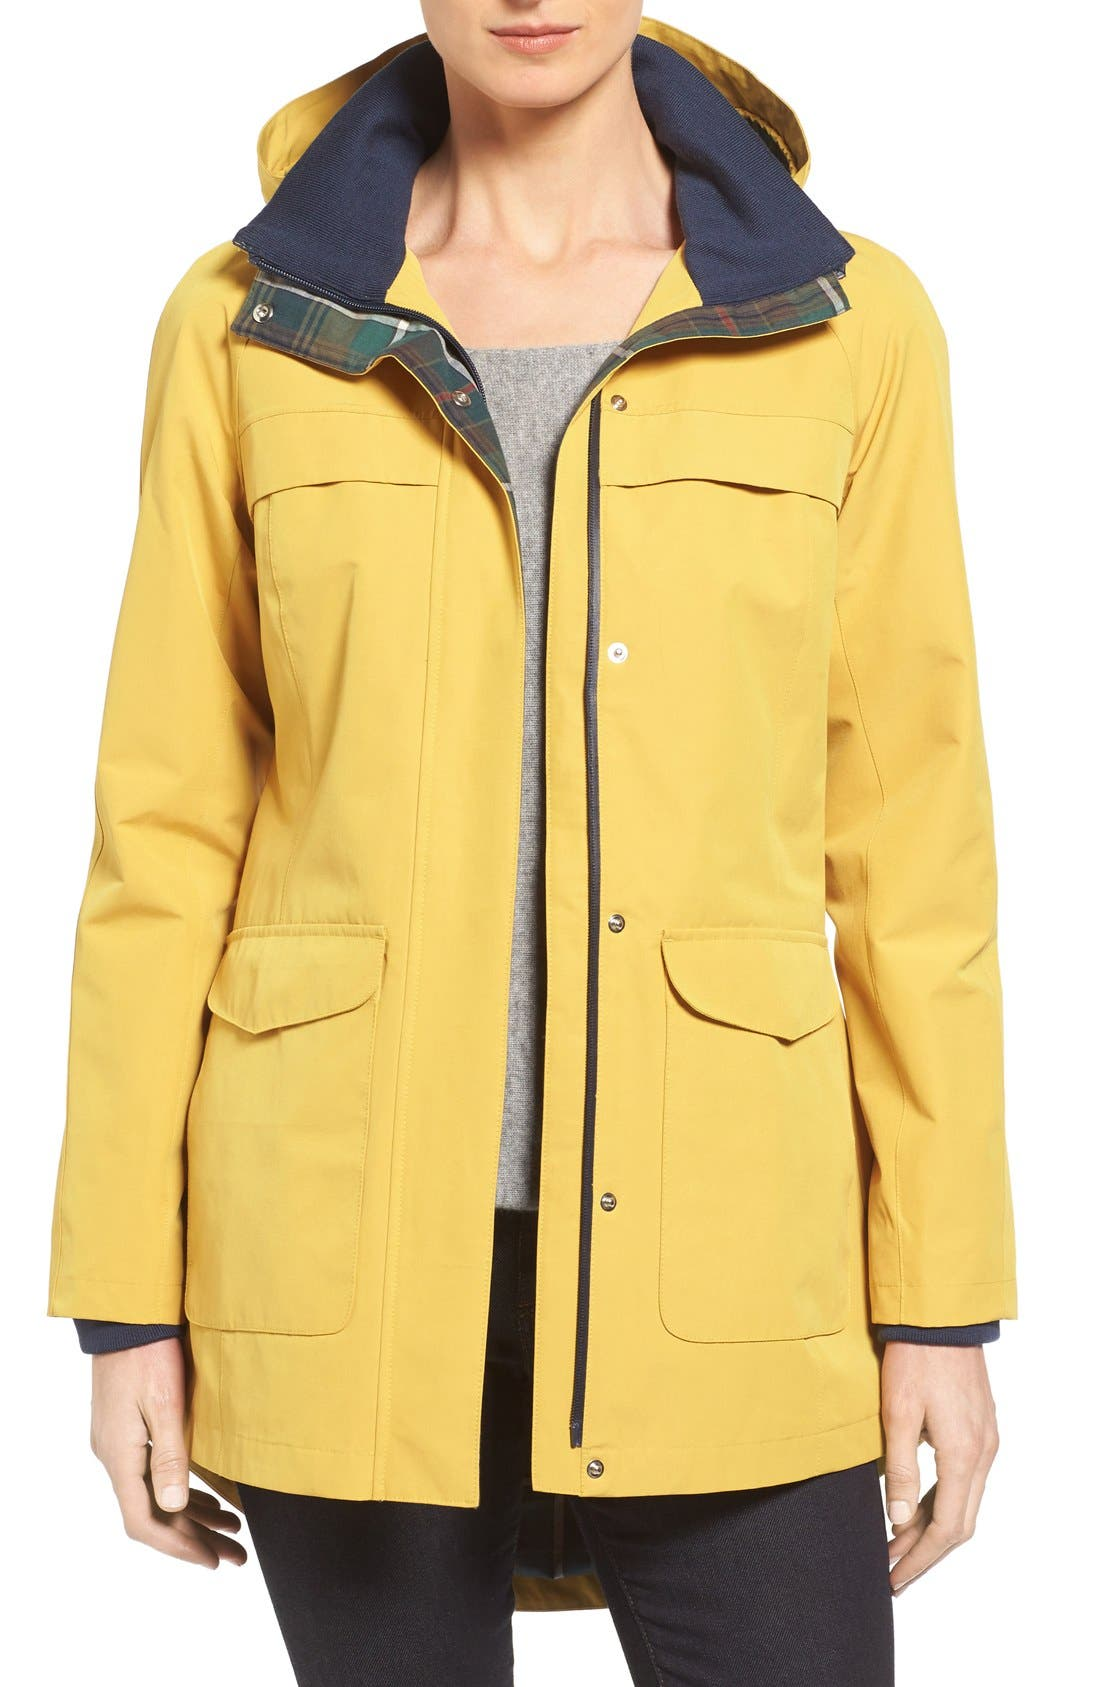 Women's Yellow Coats & Jackets | Nordstrom